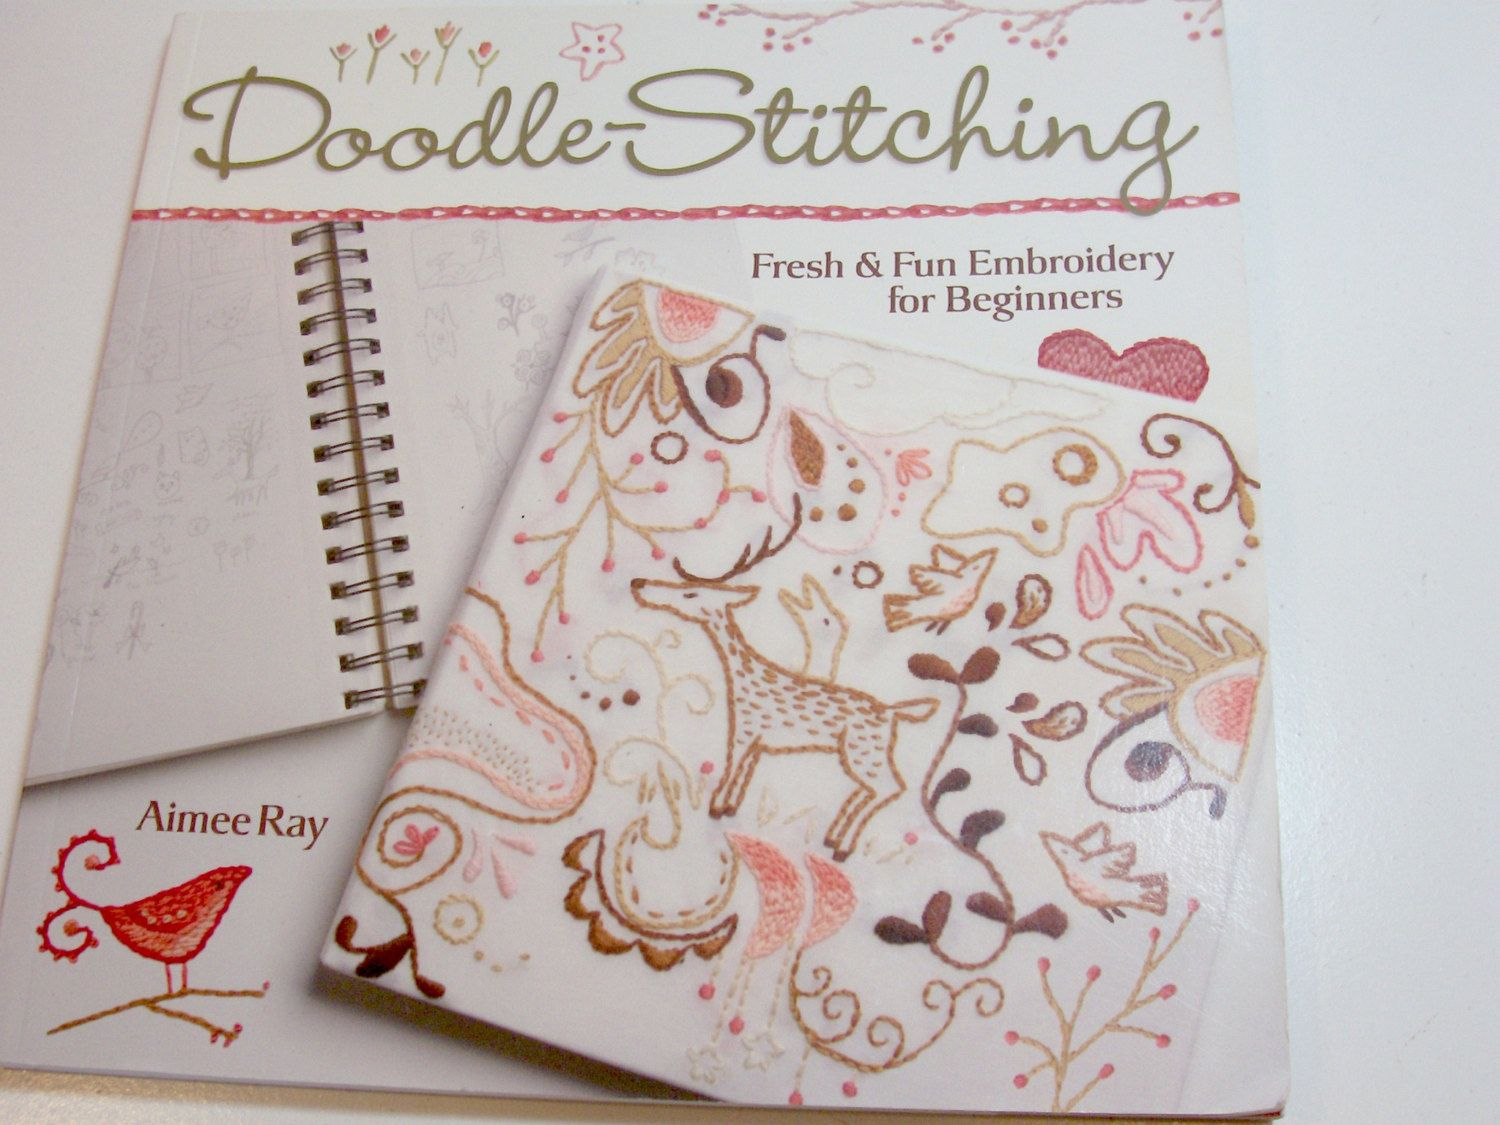 Embroidery pattern book doodle stitching fresh and fun embroidery pattern book doodle stitching fresh and fun embroidery for beginners by aimee ray bankloansurffo Image collections